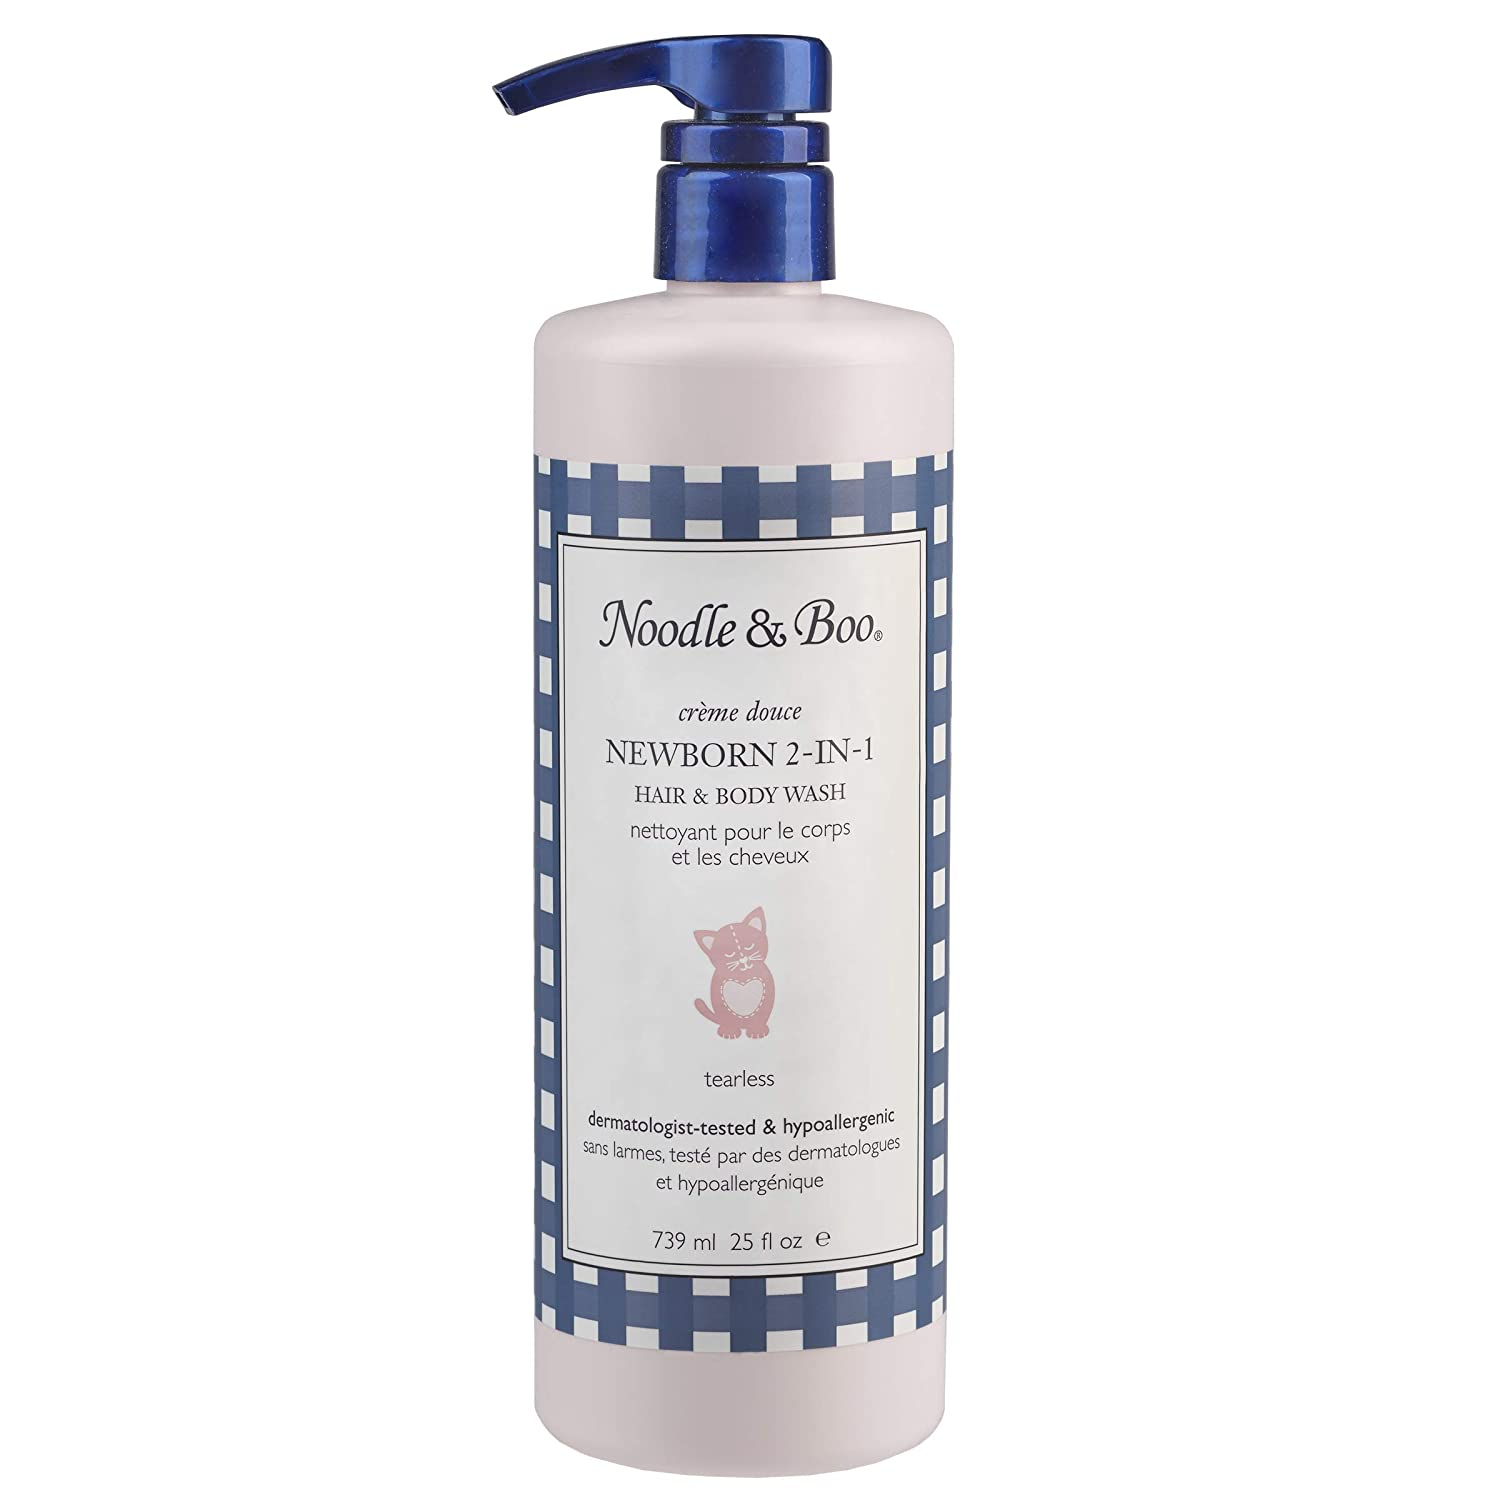 Noodle & Boo 2-in-1 Newborn Hair & Baby Body Wash for Baby